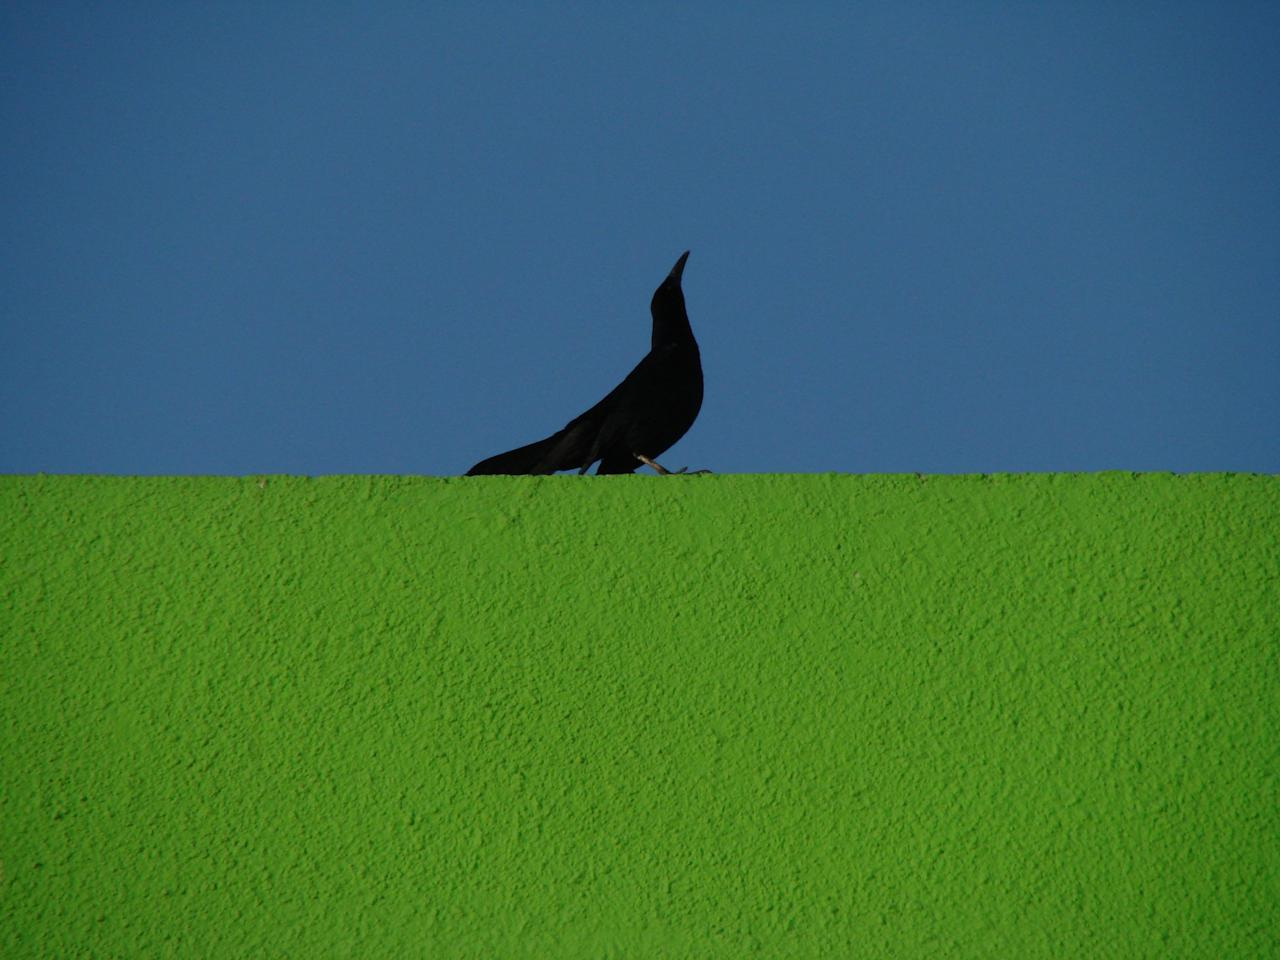 <p>A great-tailed grackle prances along the roof of a green building against the background of a bright blue sky in Mexico. (Marco Zenatello/SWNS) </p>